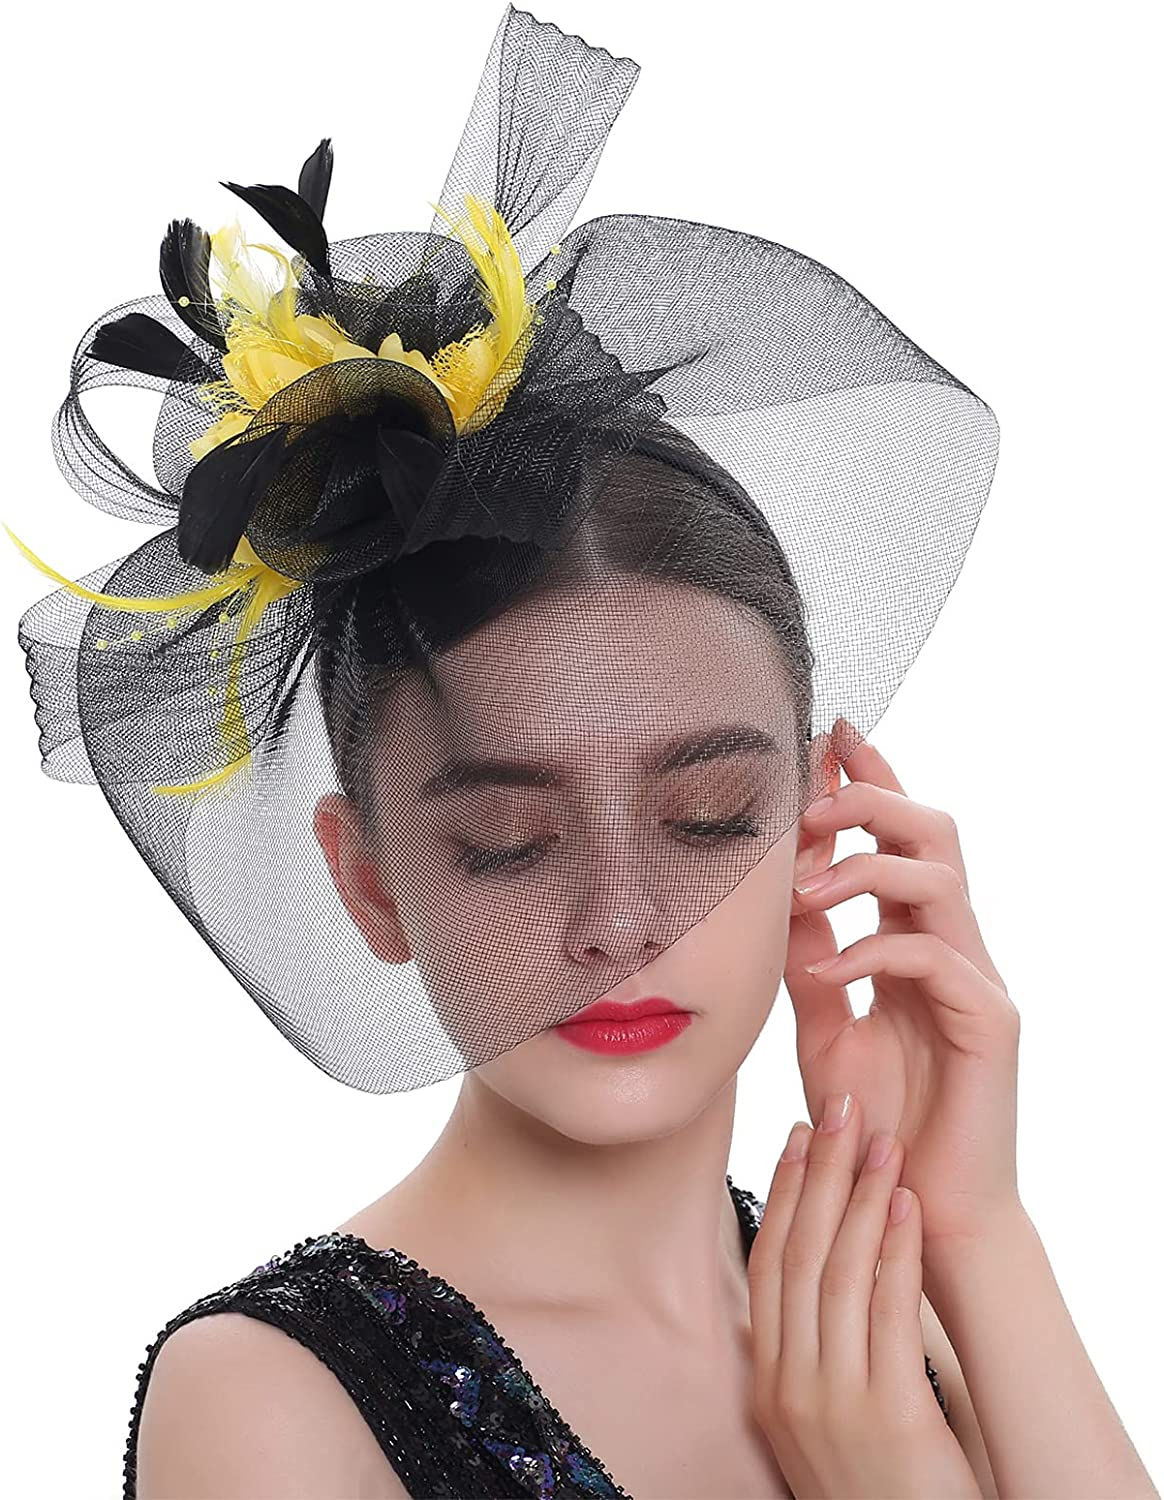 Women's Fascinator Hats with Lace Gloves Set Mesh Party Wedding Decor